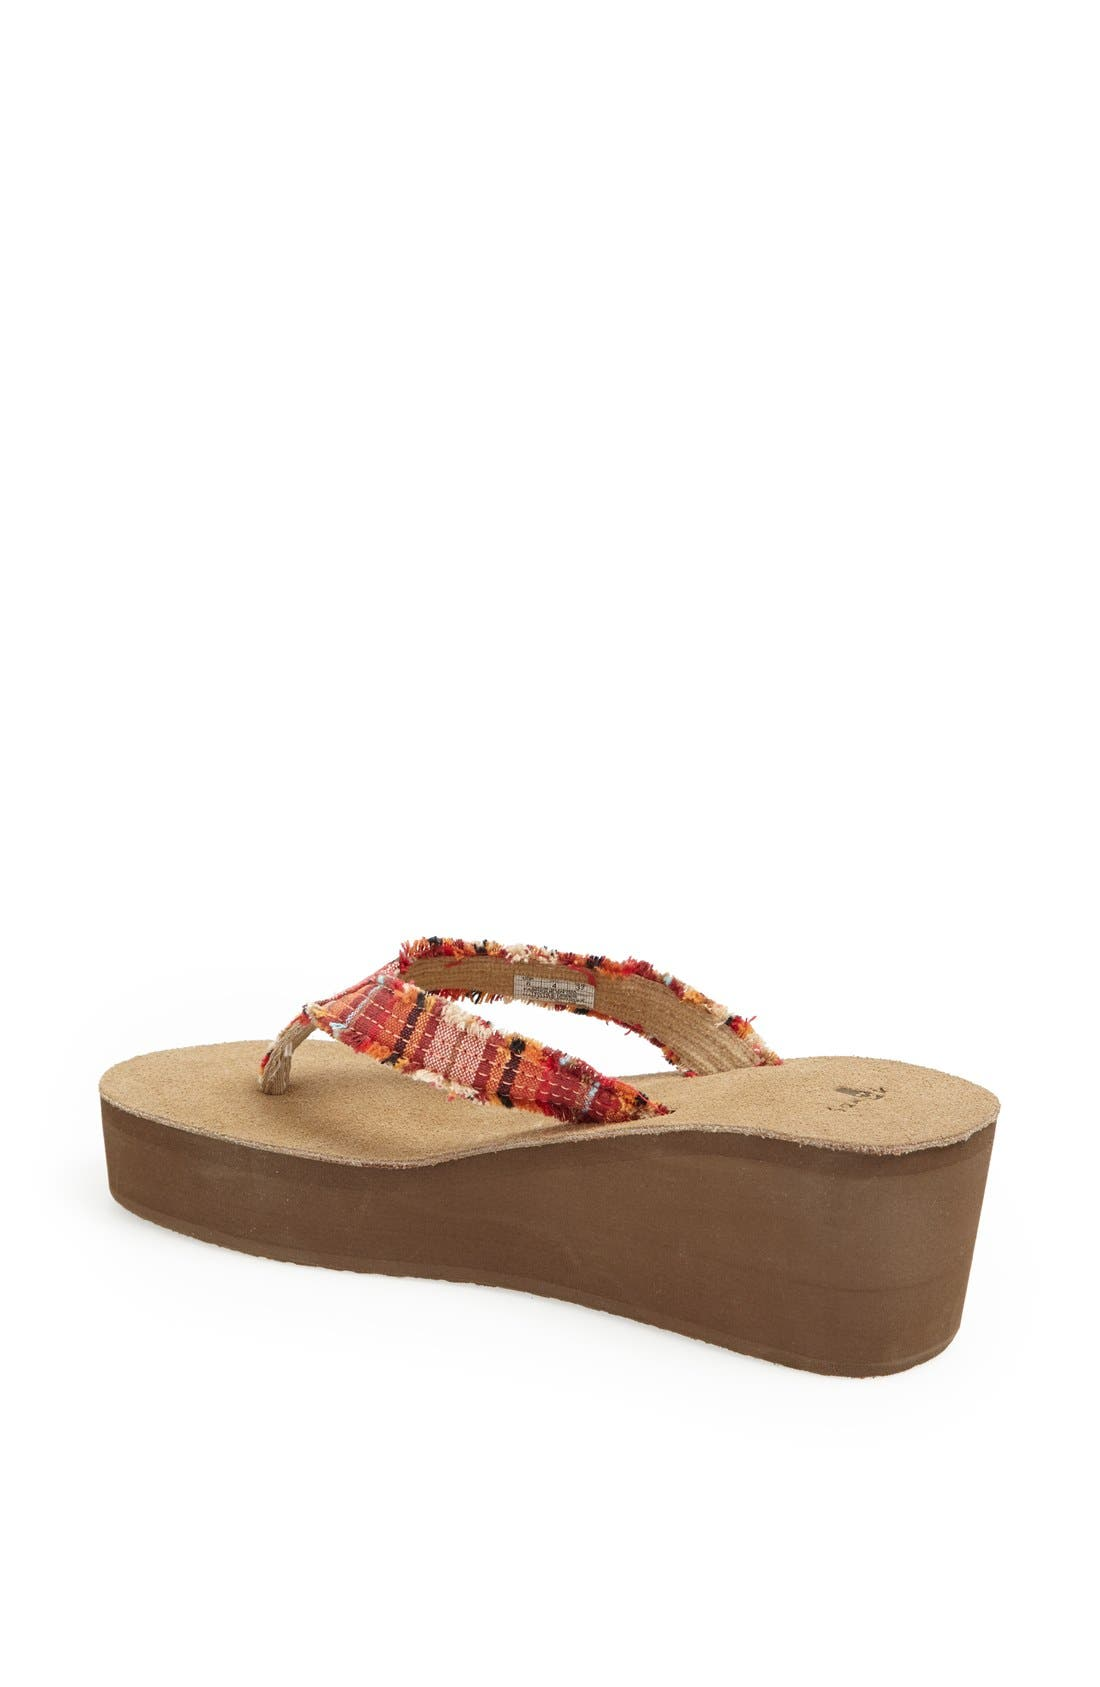 Alternate Image 2  - Sanuk 'Fraidy Cat' Wedge Flip Flop